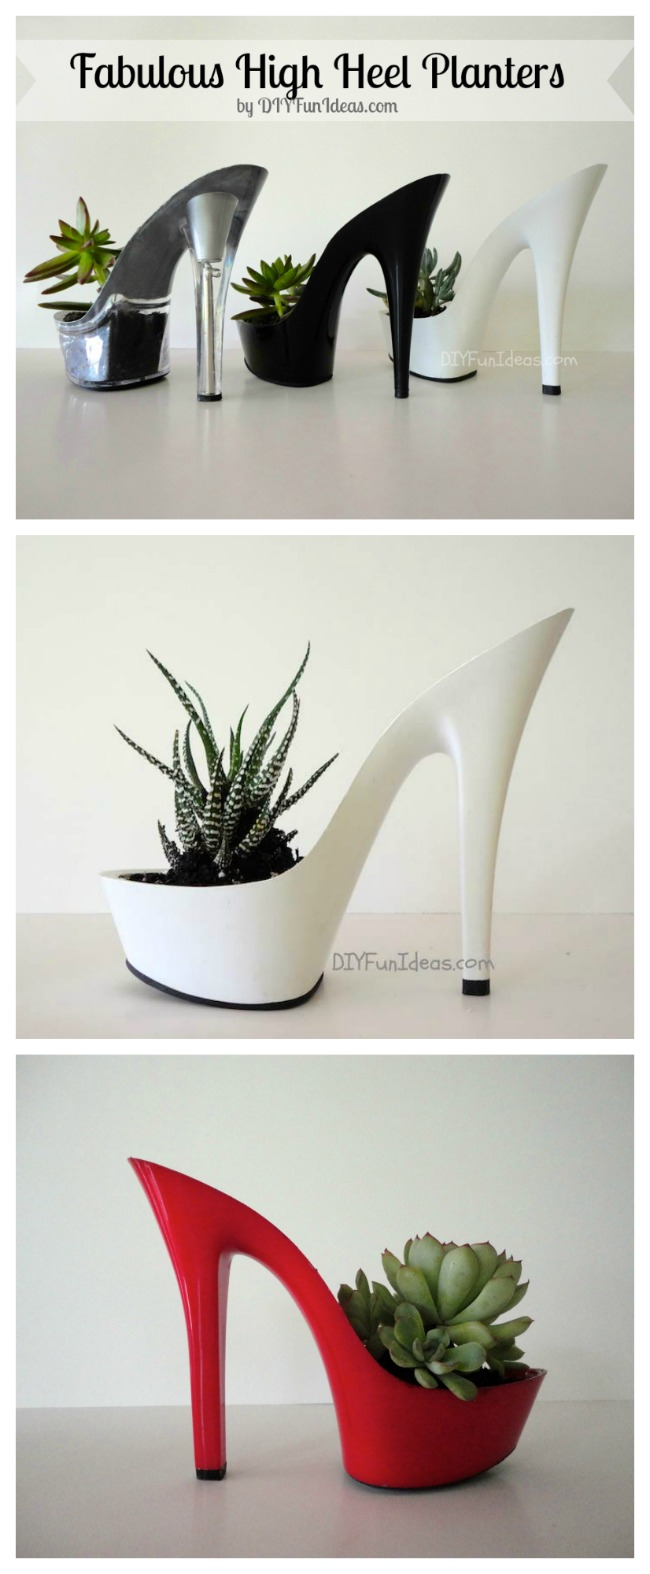 DIY High Heel Planters for succulents